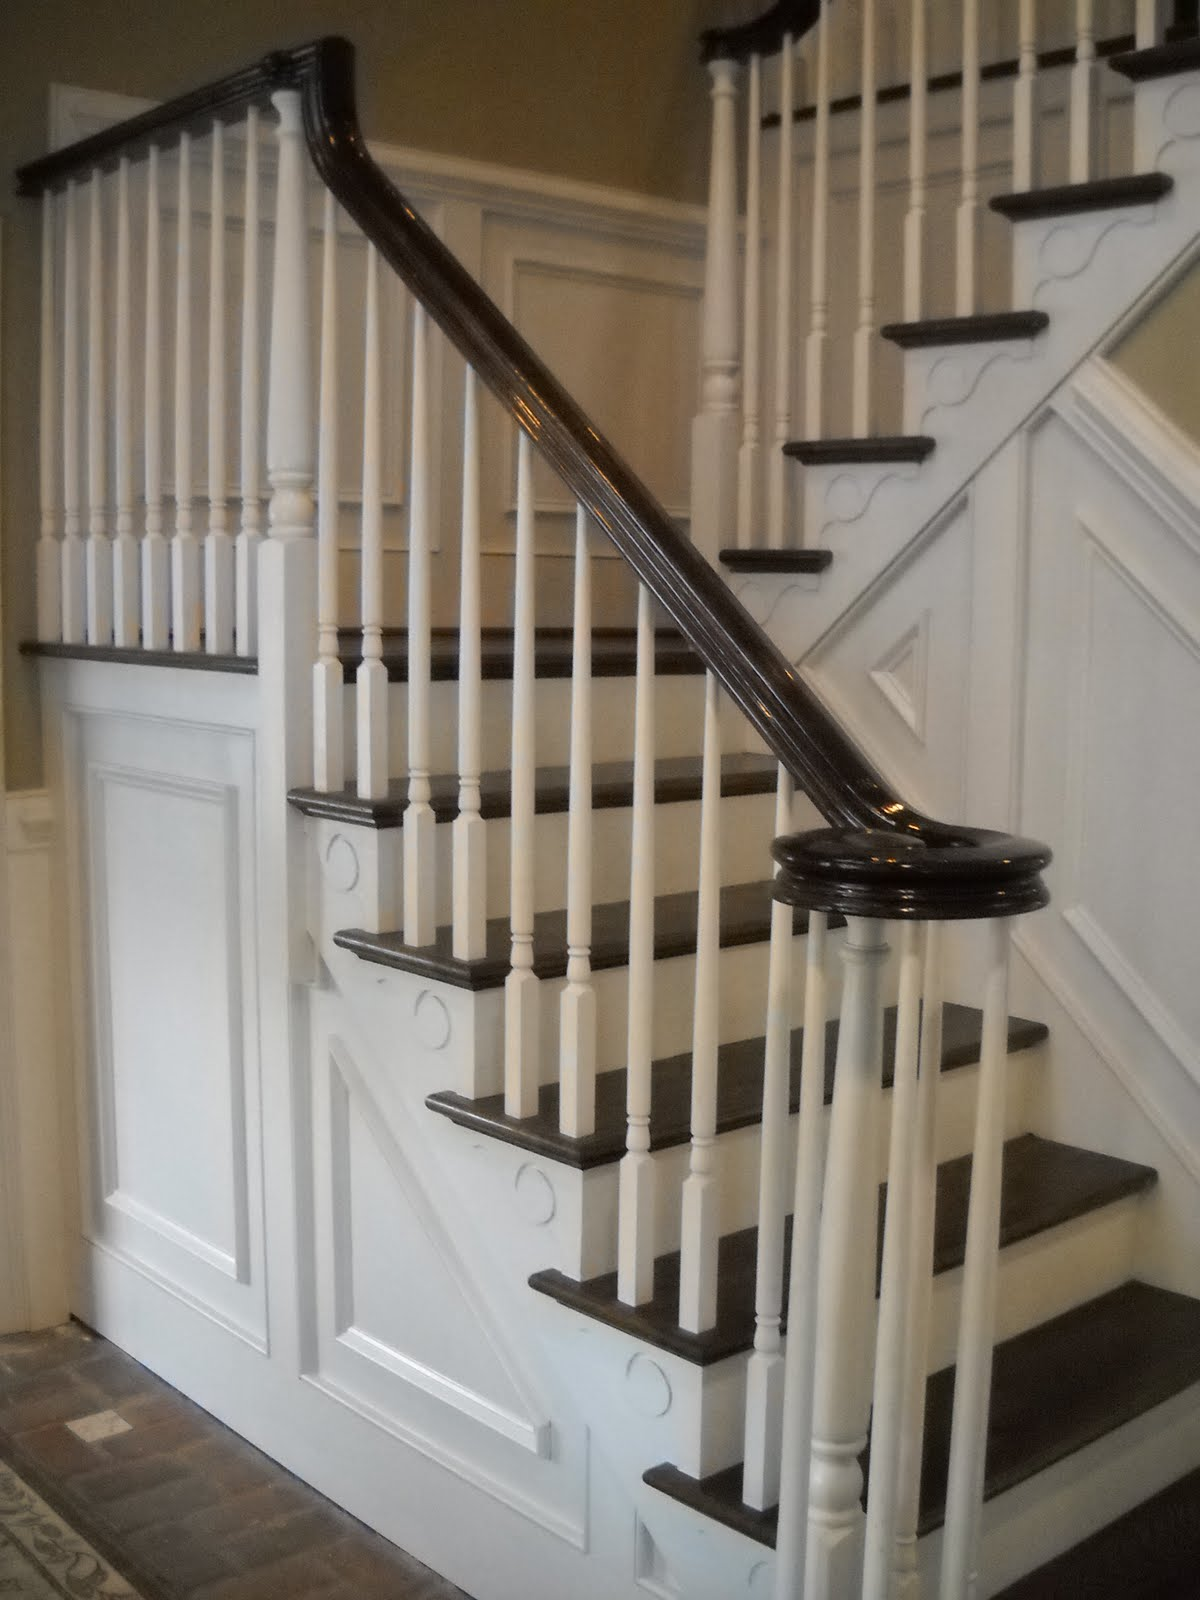 ... staircase and rail and balusters owner wanted foyer opened up to 3rd